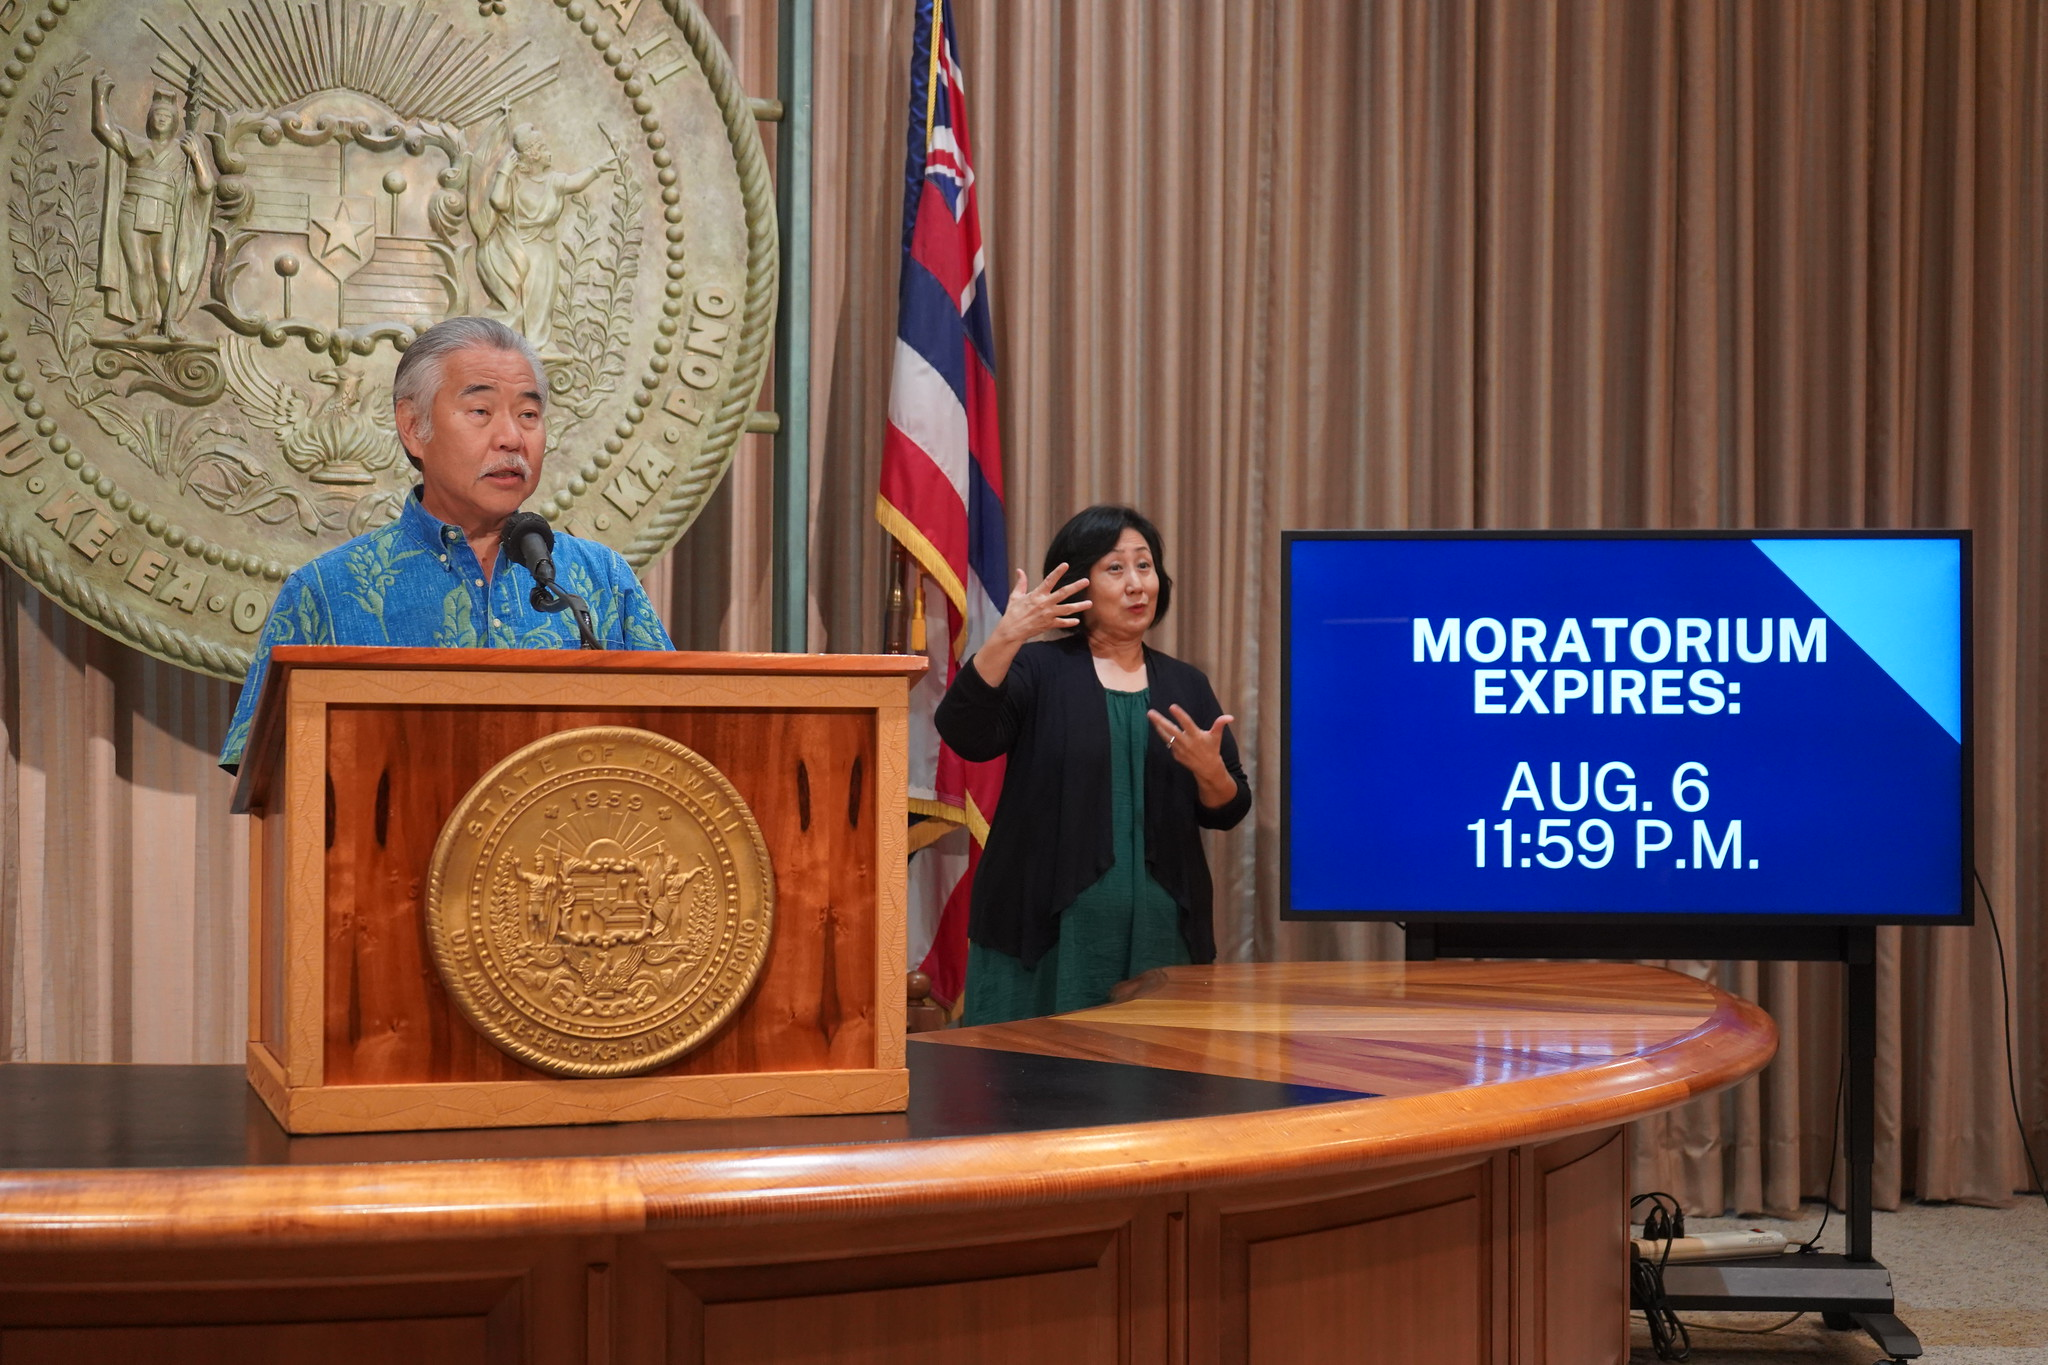 Hawai'i's Eviction Moratorium to End on Aug. 6, 2021